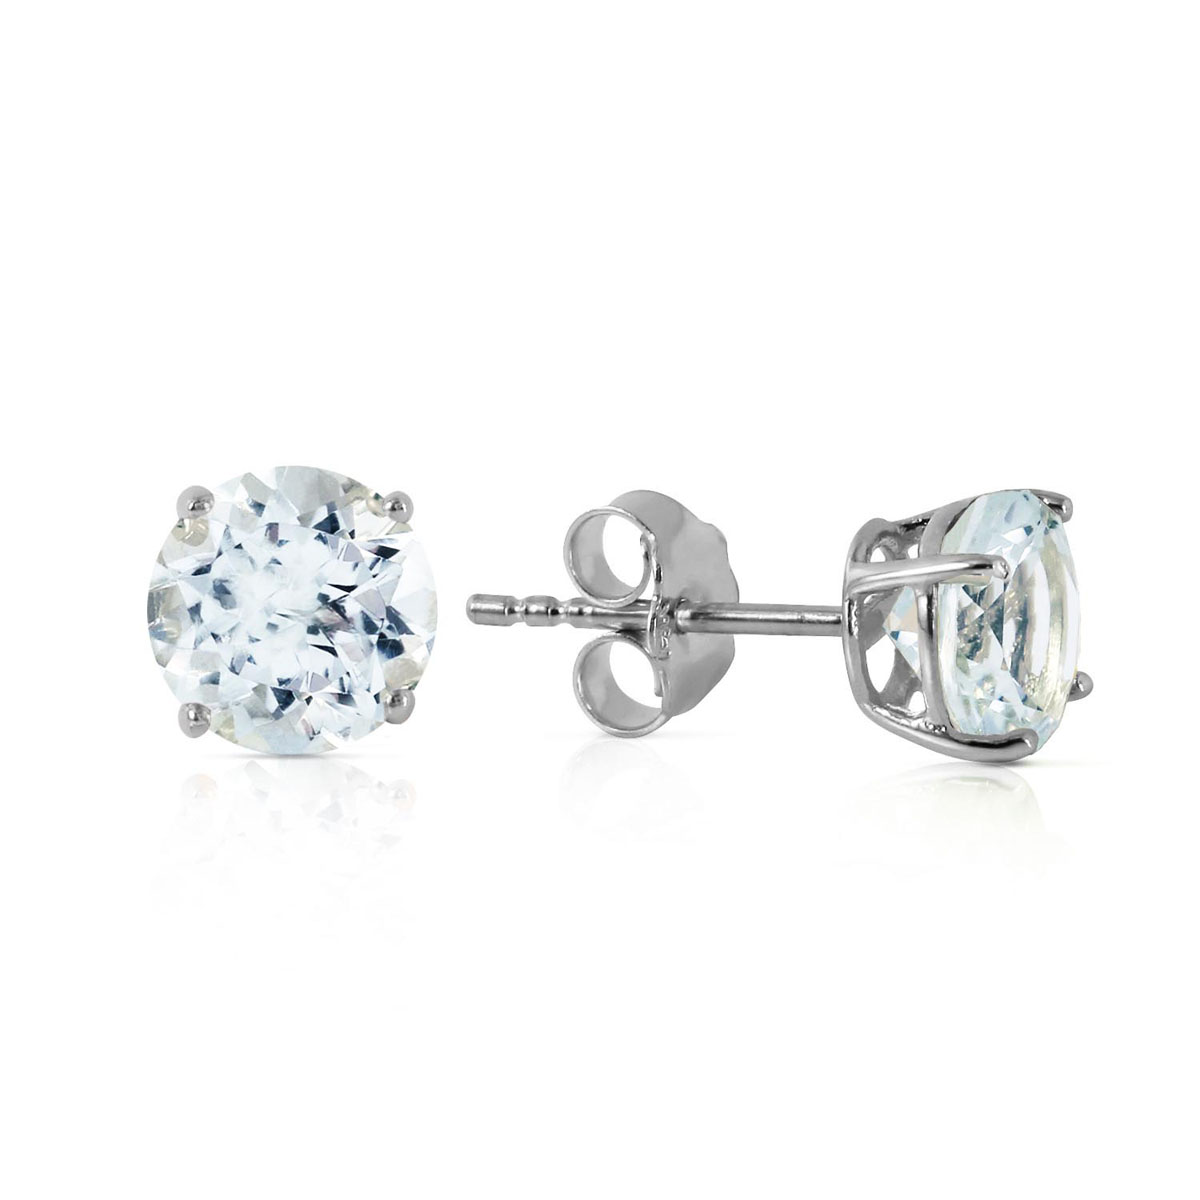 Aquamarine Stud Earrings 0.95 ctw in 9ct White Gold